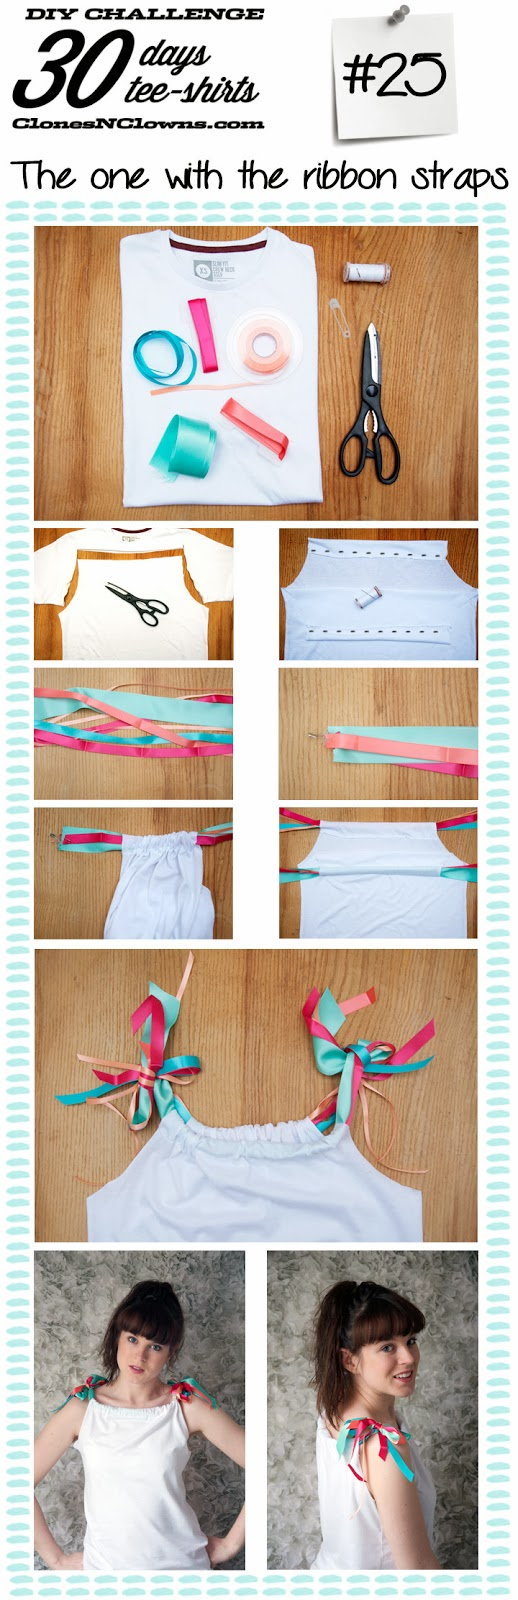 Tee-shirts with ribbons straps